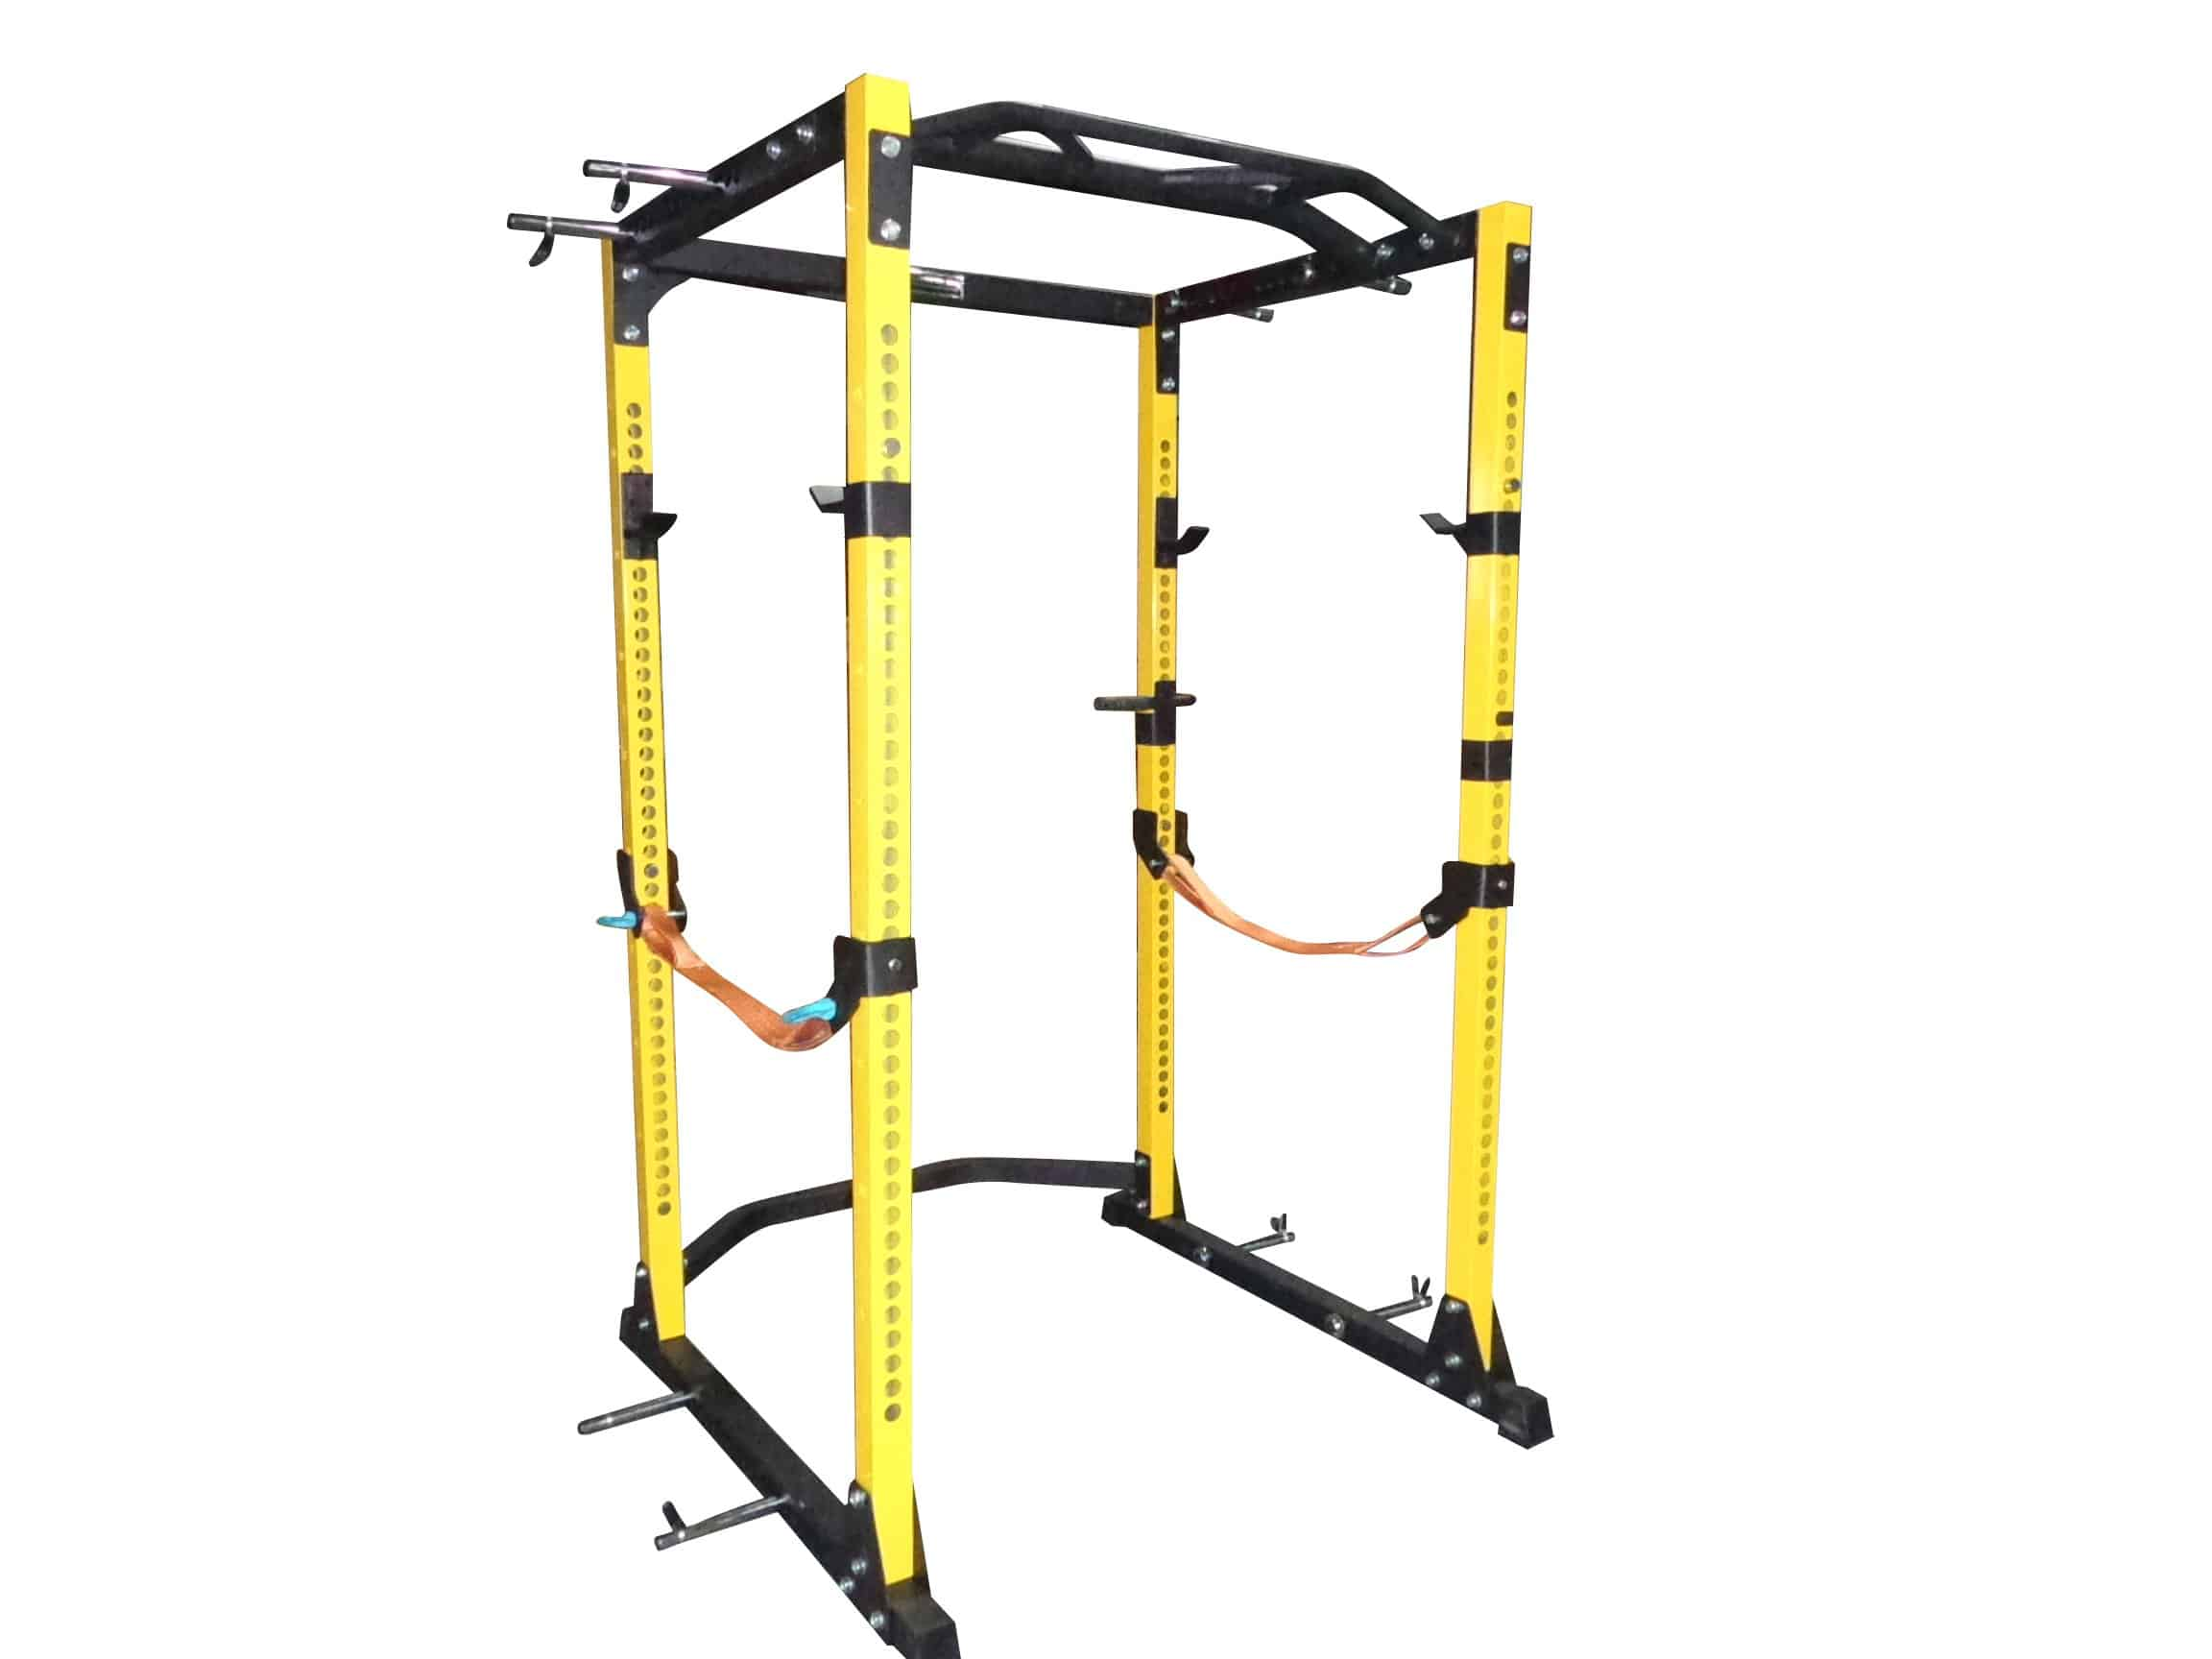 Light Commercial Power Rack 4.0 Home Gym